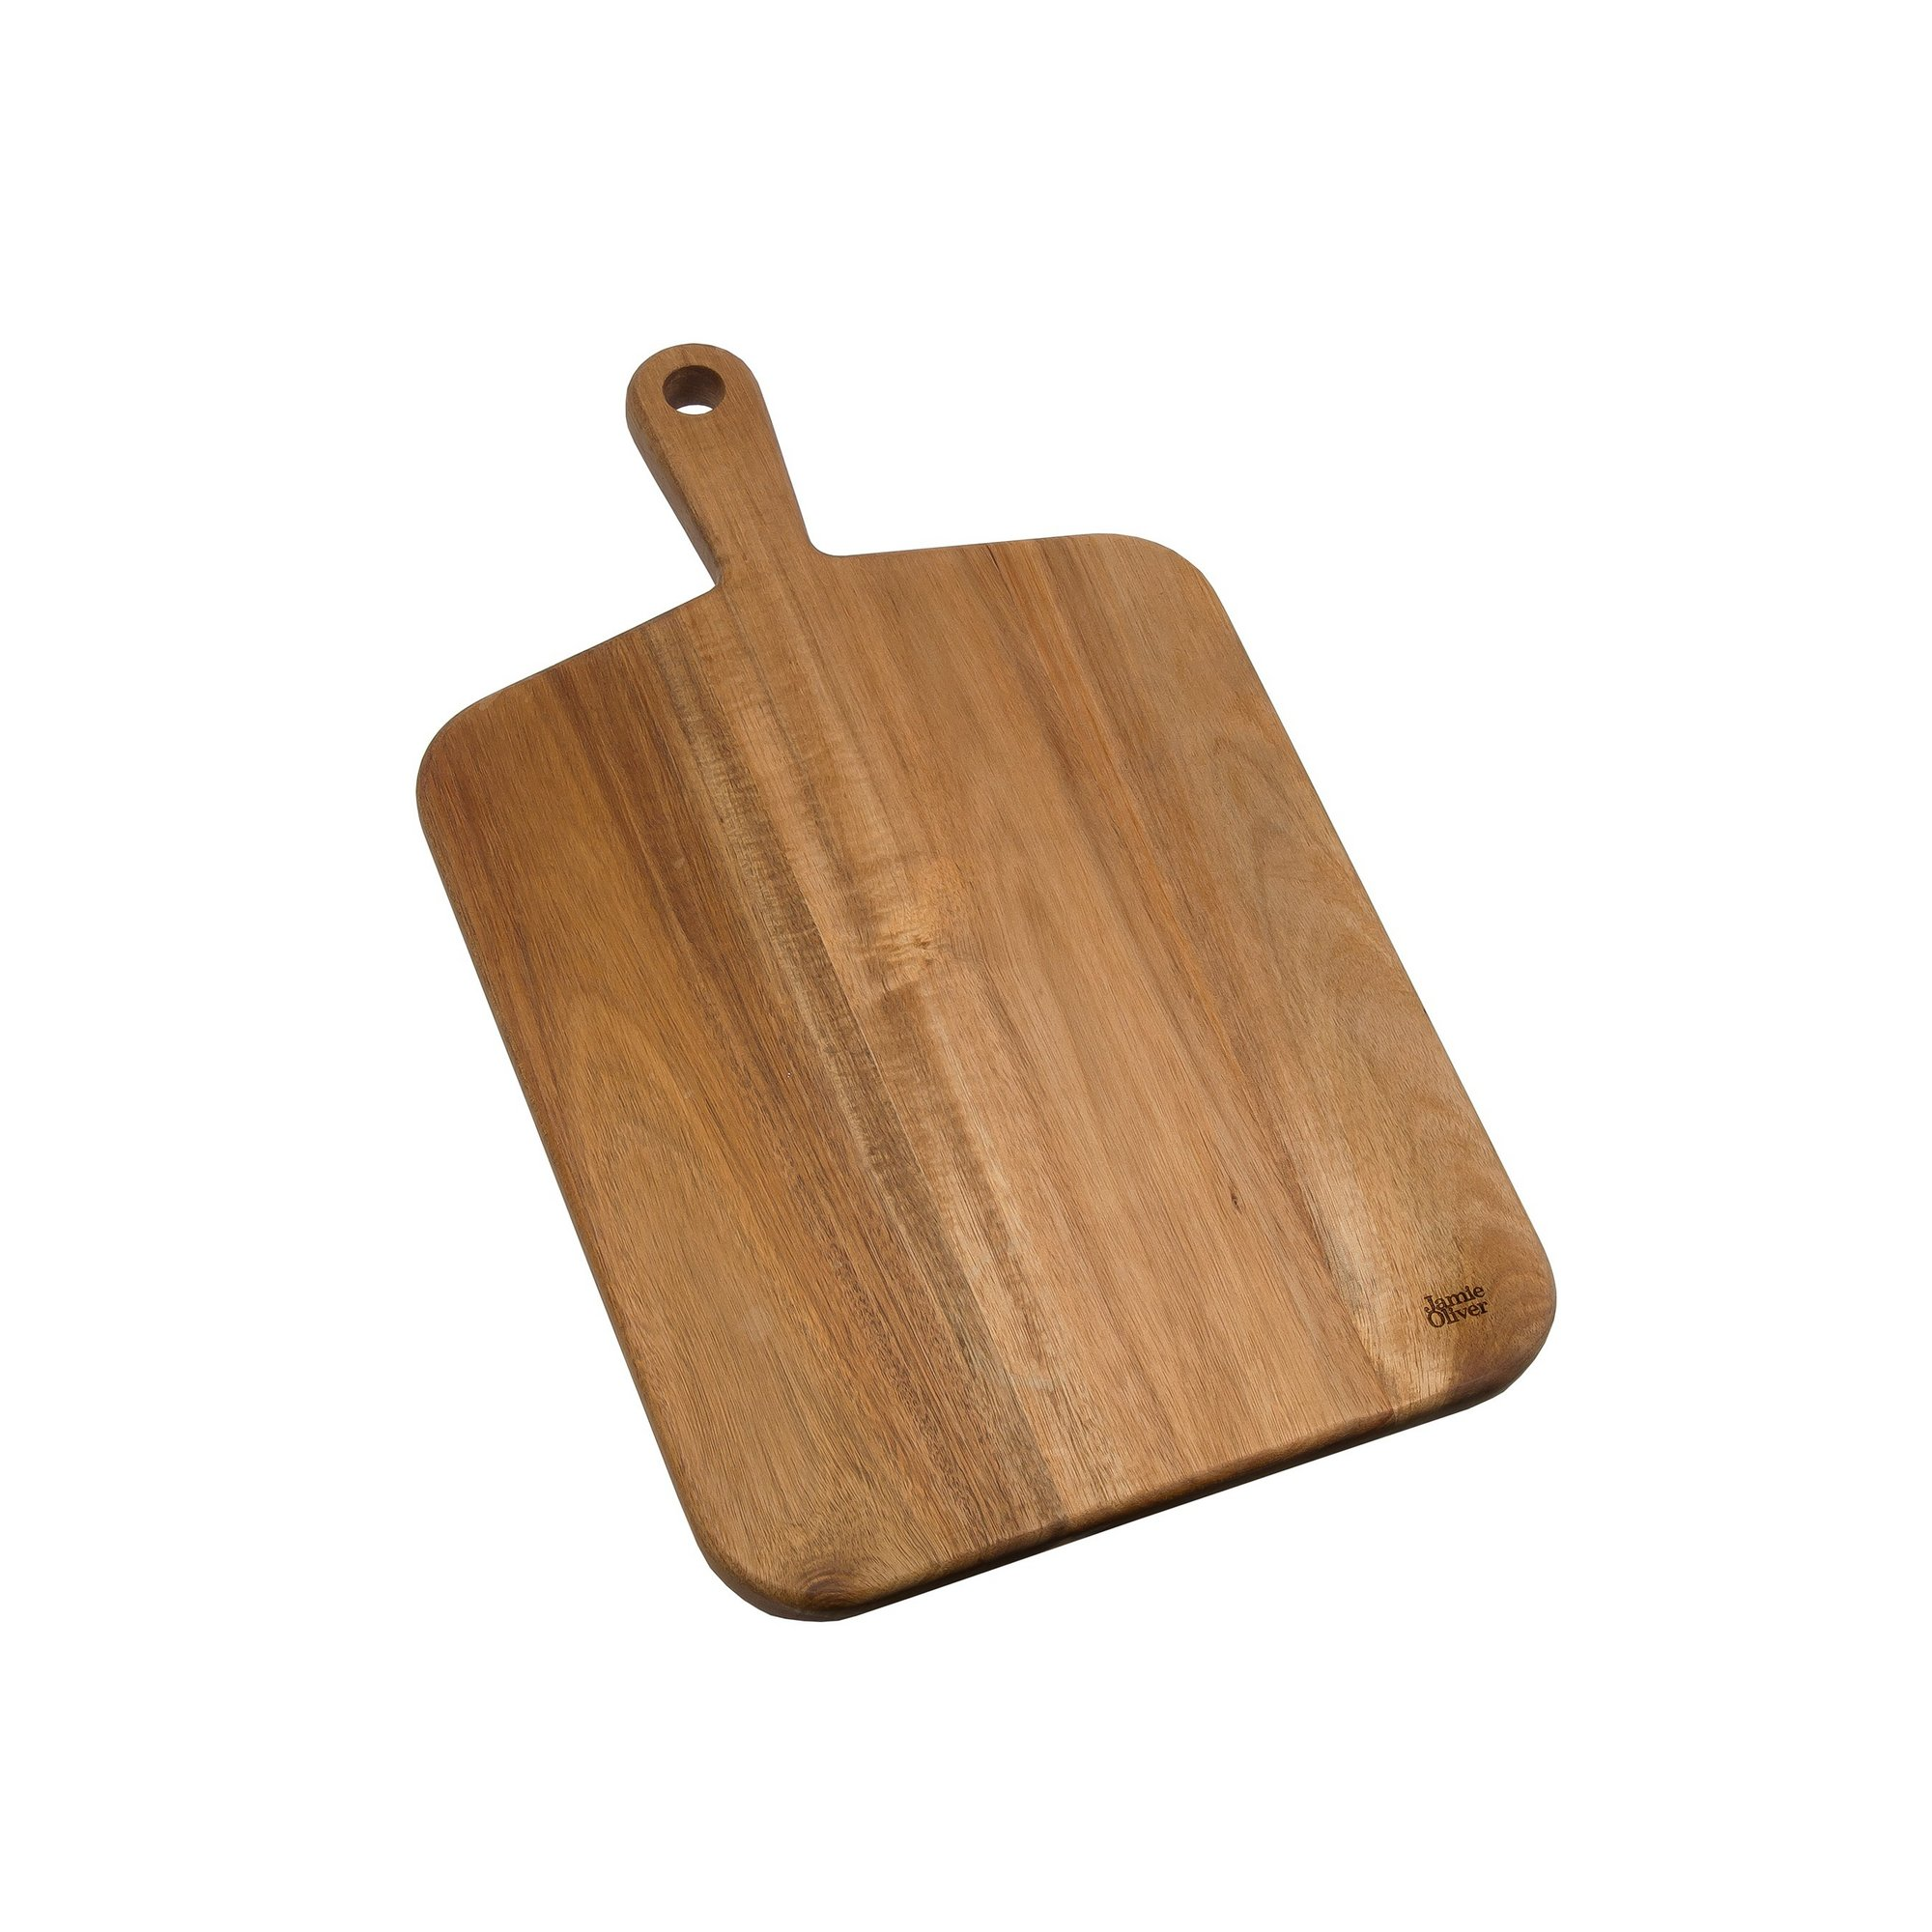 Image of Jamie Oliver Acacia Medium Chopping Board